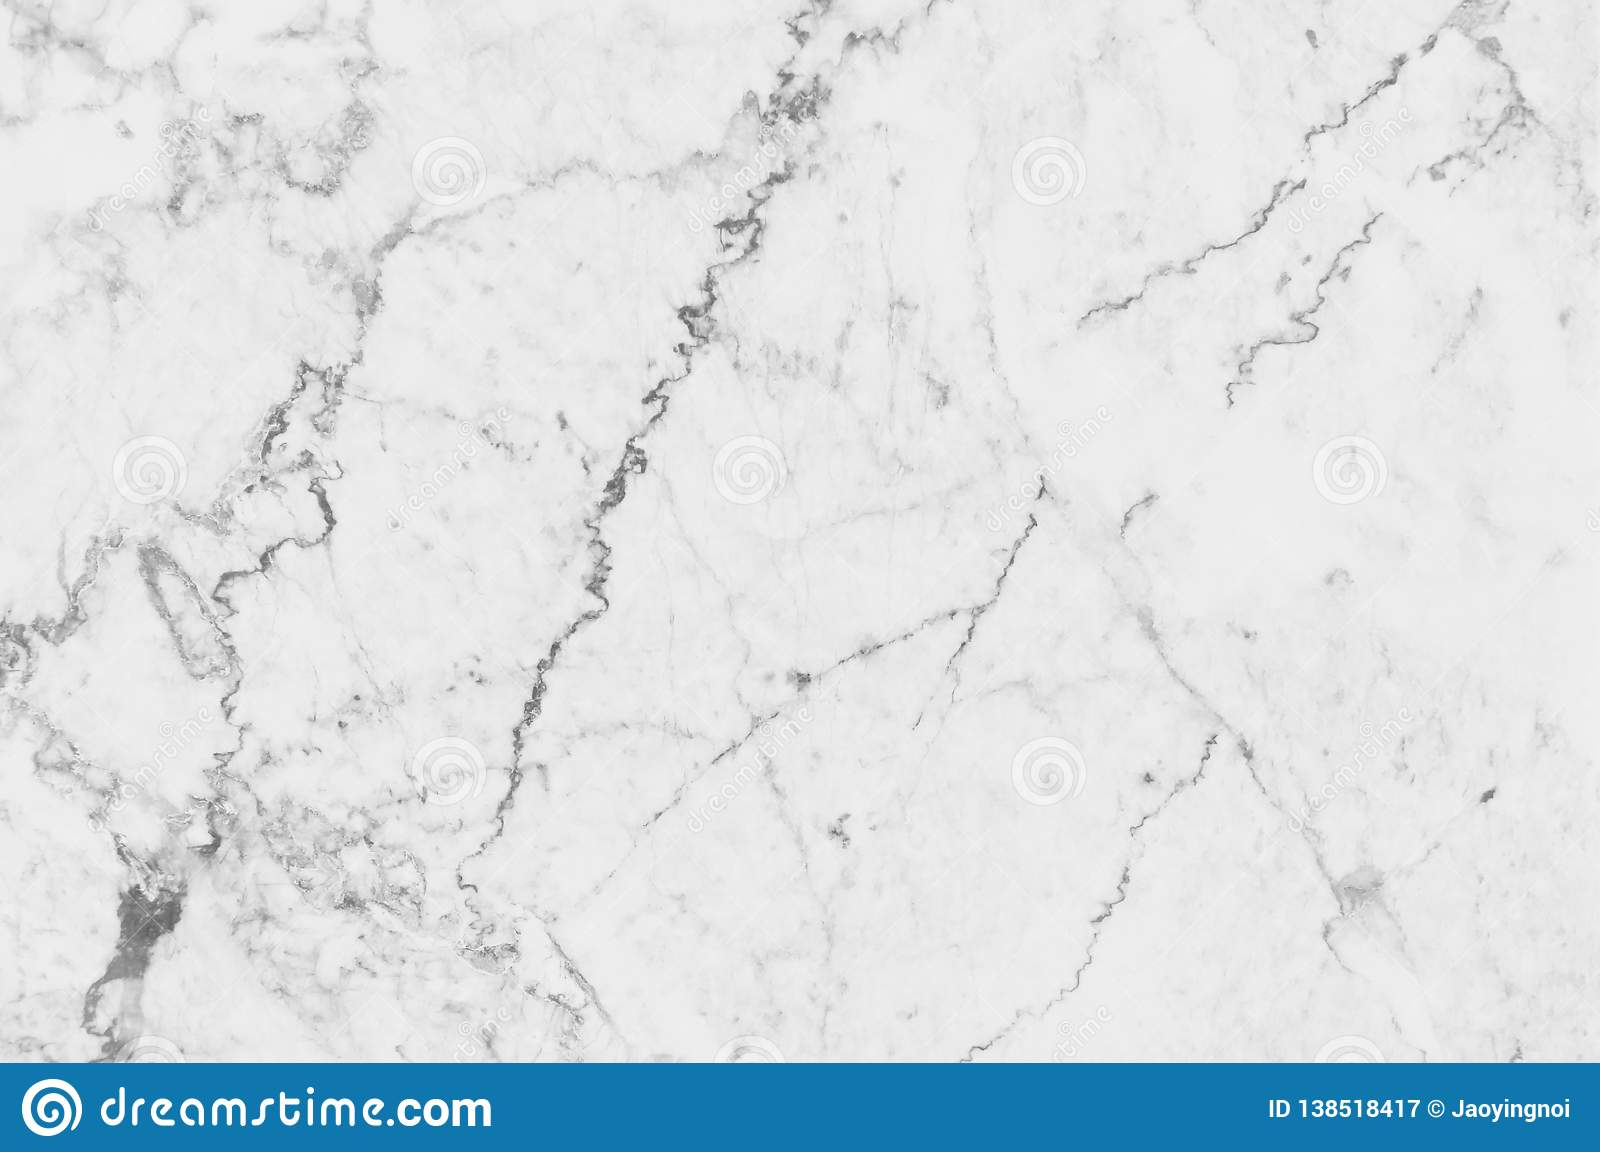 White with grey marble background. White marble,quartz texture. Natural pattern or abstract background